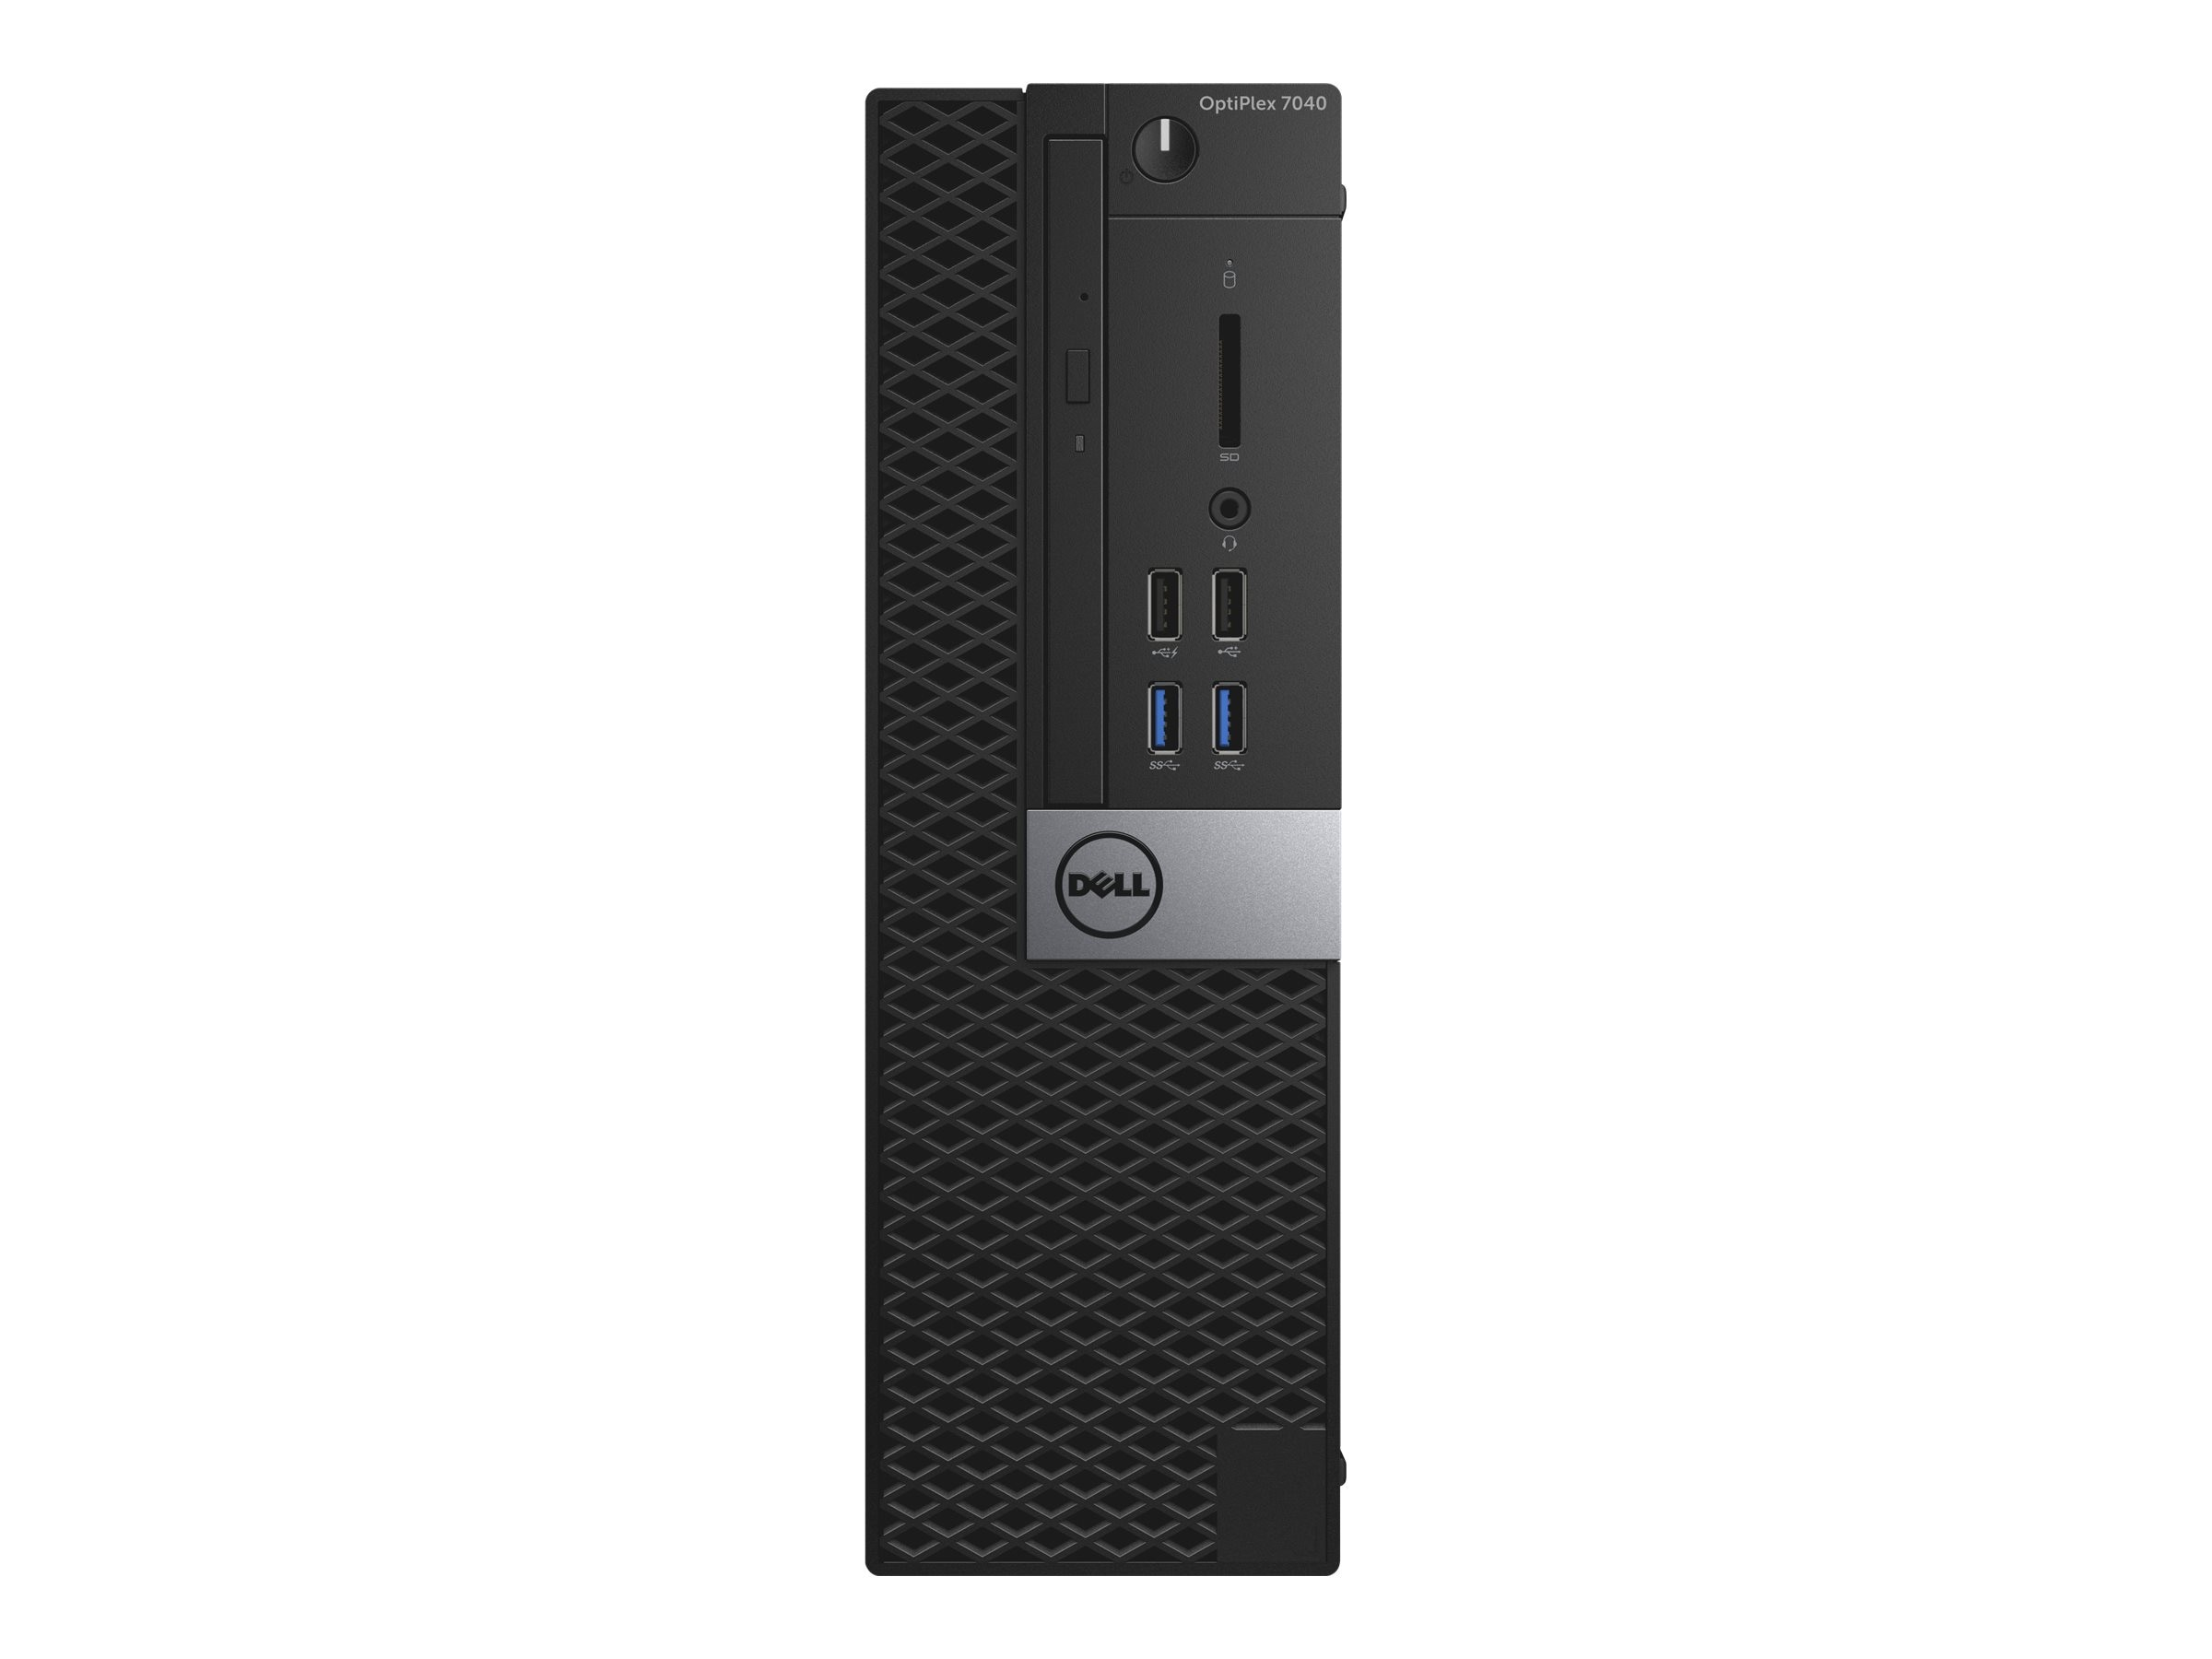 Dell OptiPlex 7040 3.2GHz Core i5 4GB RAM 500GB hard drive, 2GH45